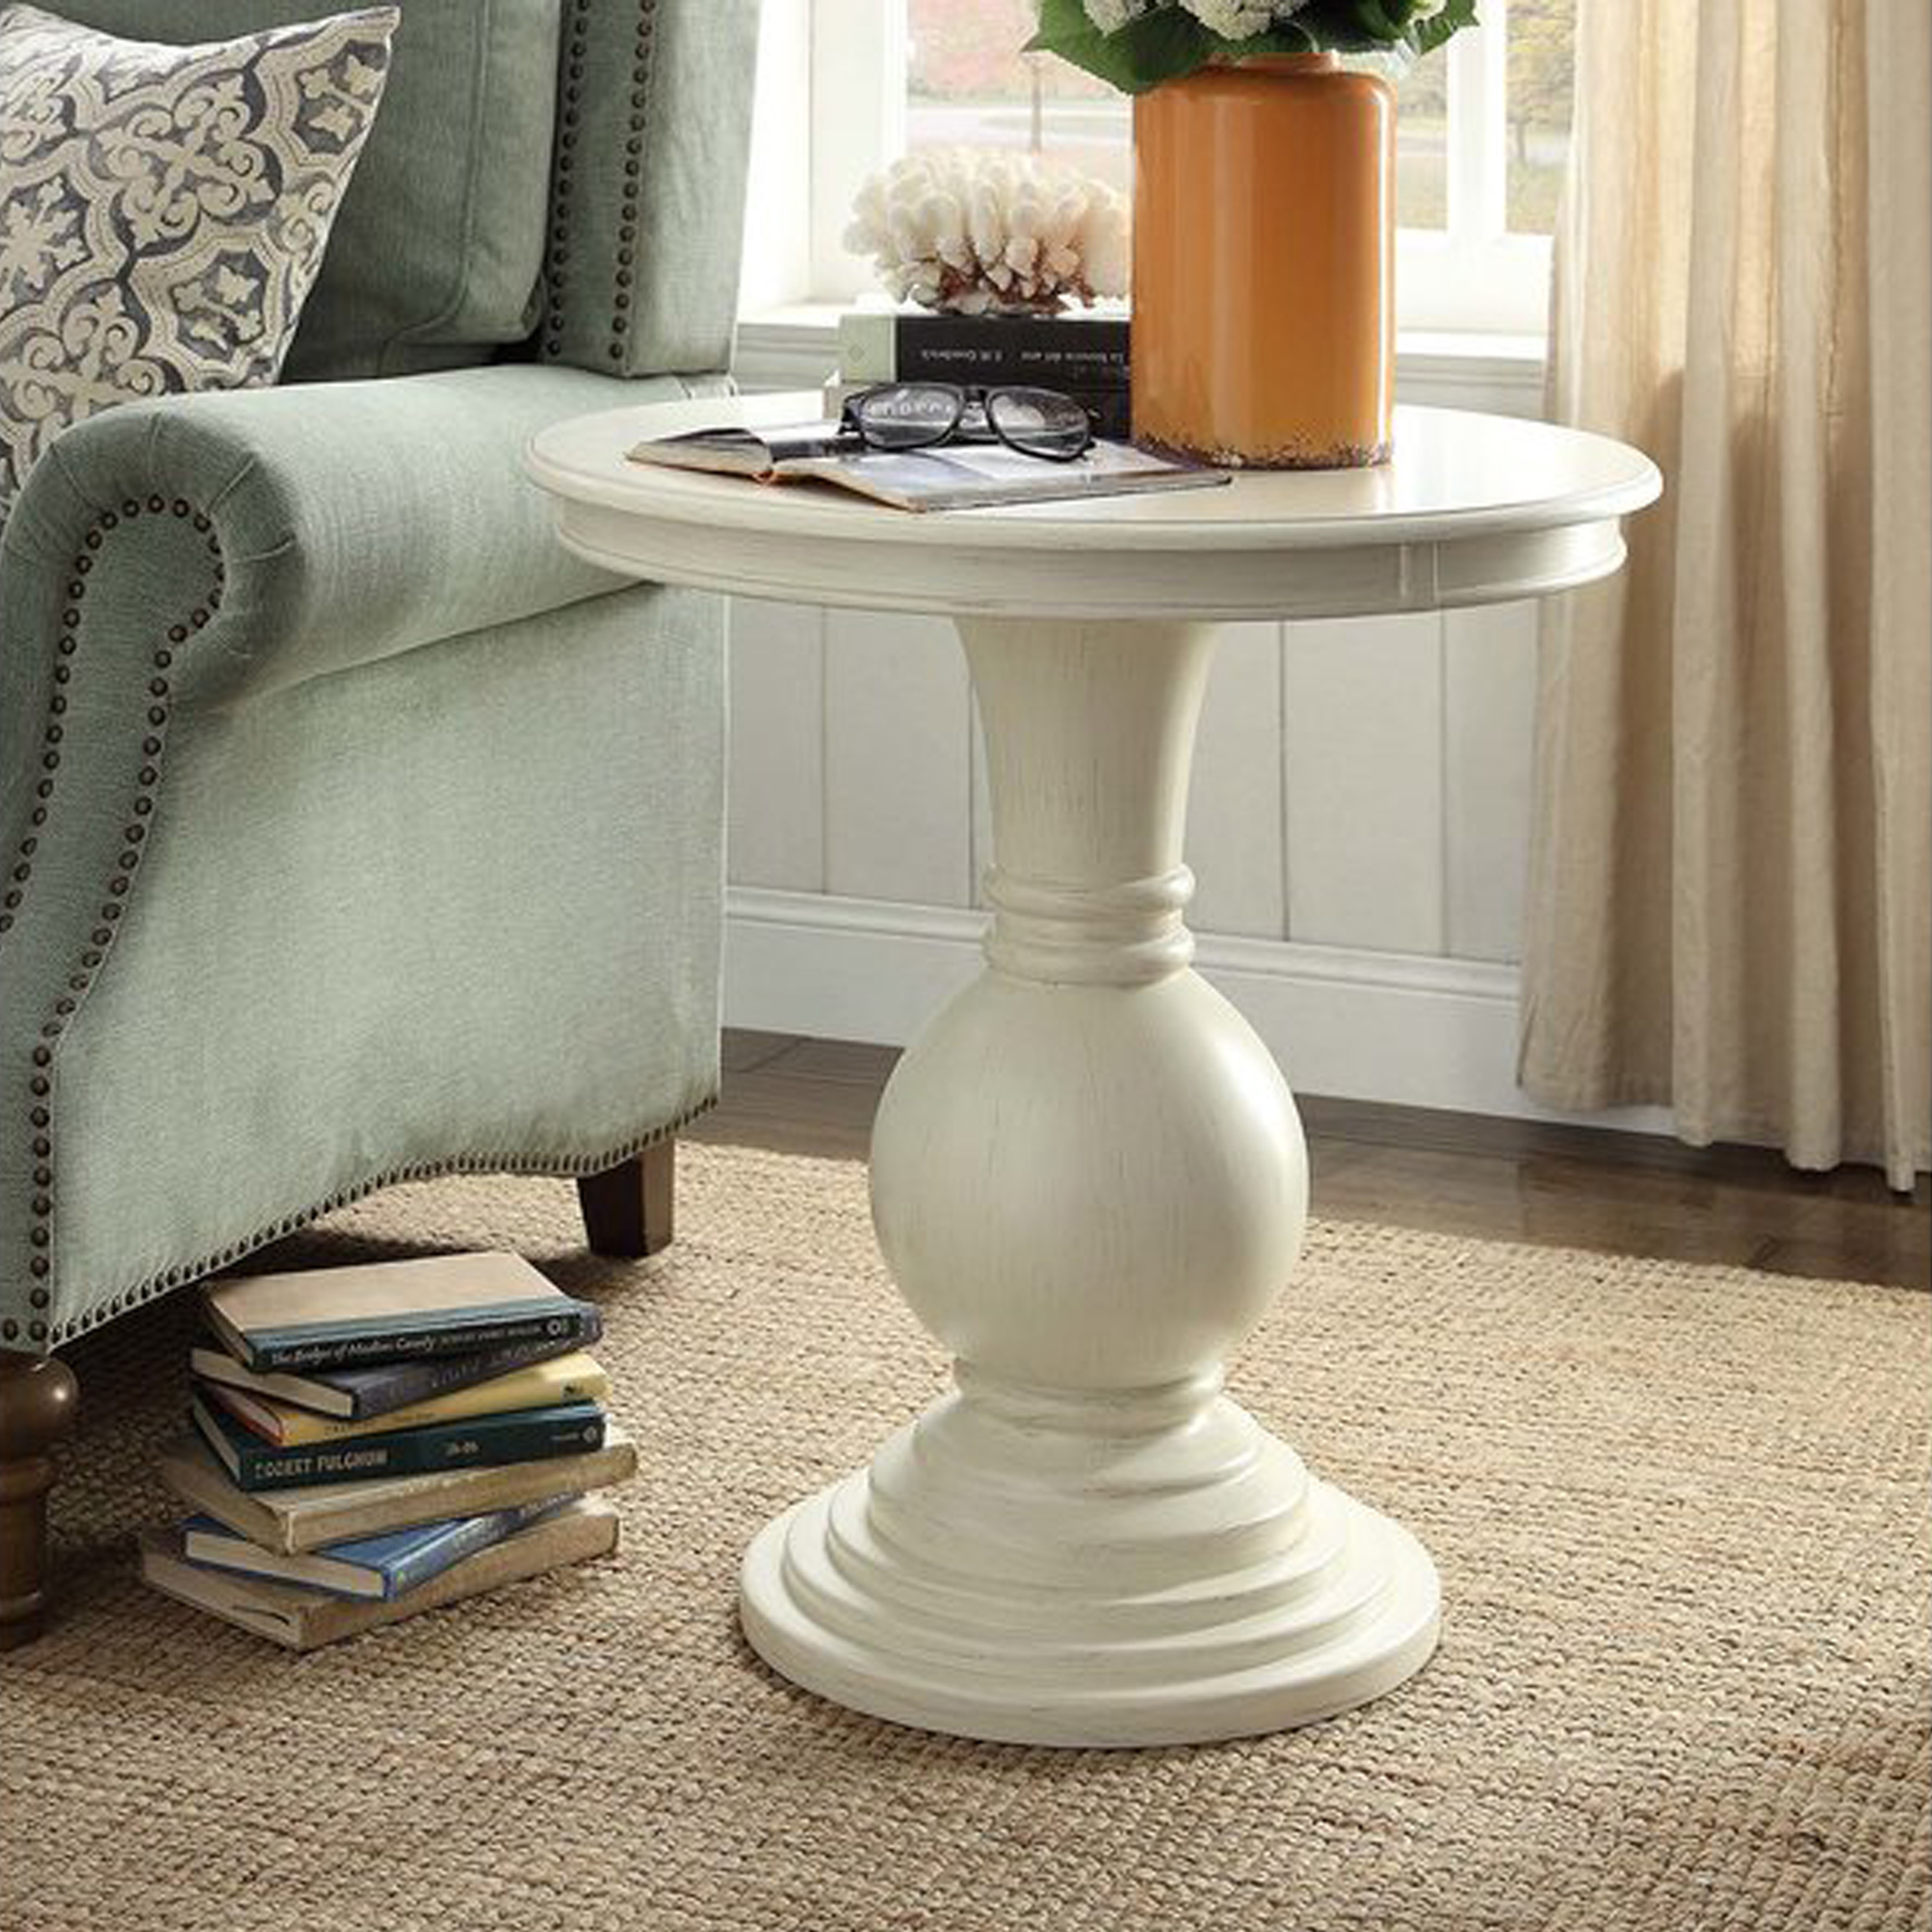 tall pedestal accent table design ideas round end tables side lamp for wrought iron small black distressed off white best accentuate your living furniture ikea ceramic outdoor